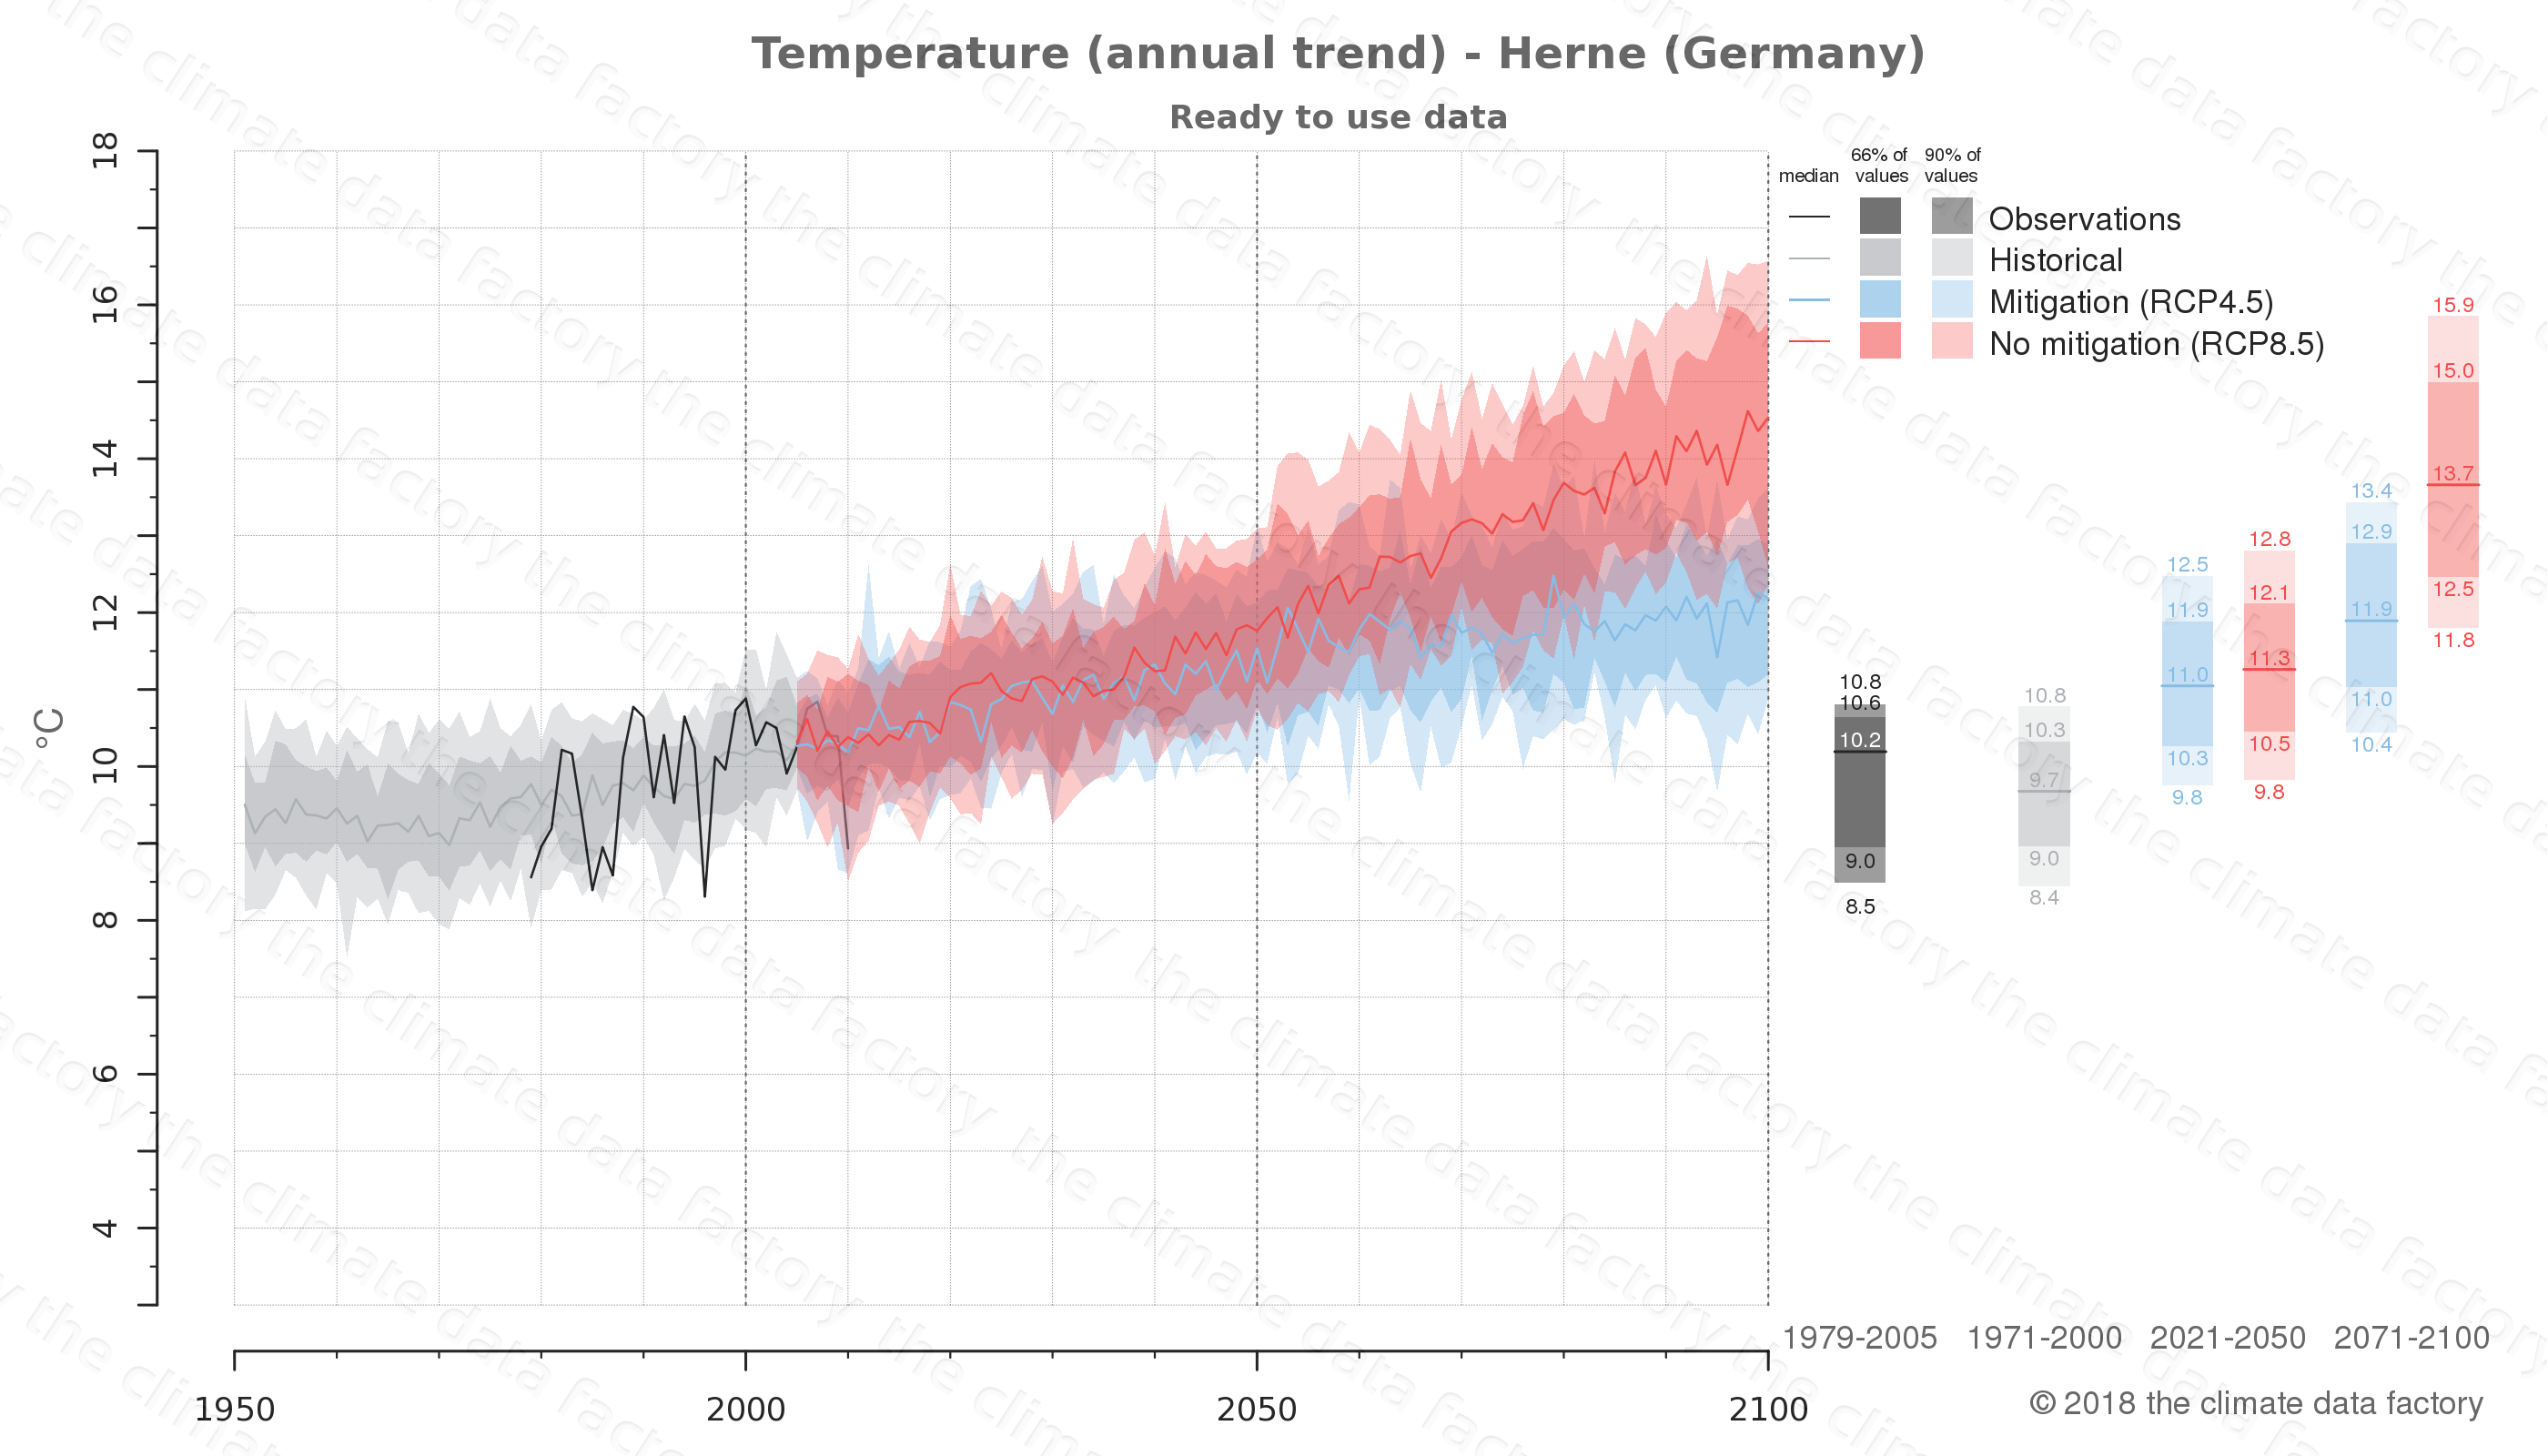 climate change data policy adaptation climate graph city data temperature herne germany